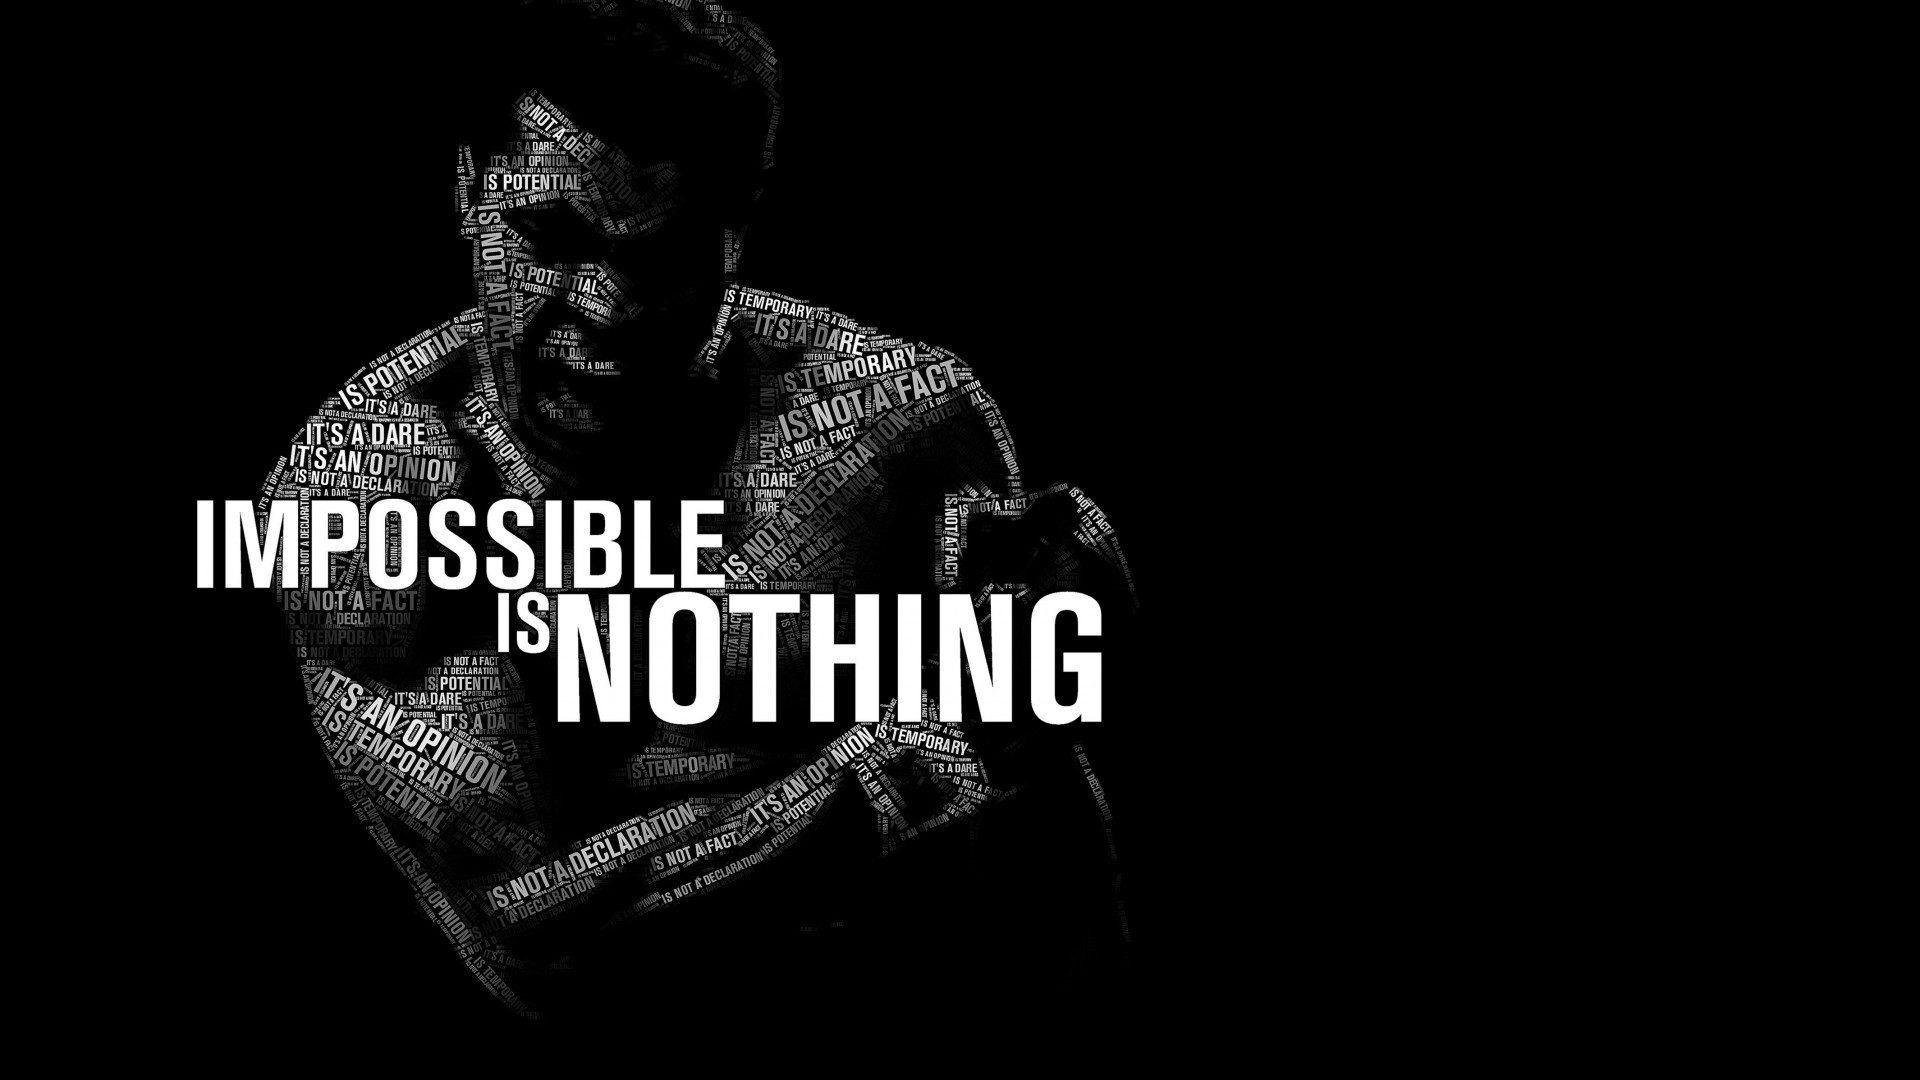 Impossible Is Nothing - Muhammad Ali Wallpaper for Desktop 1920x1080